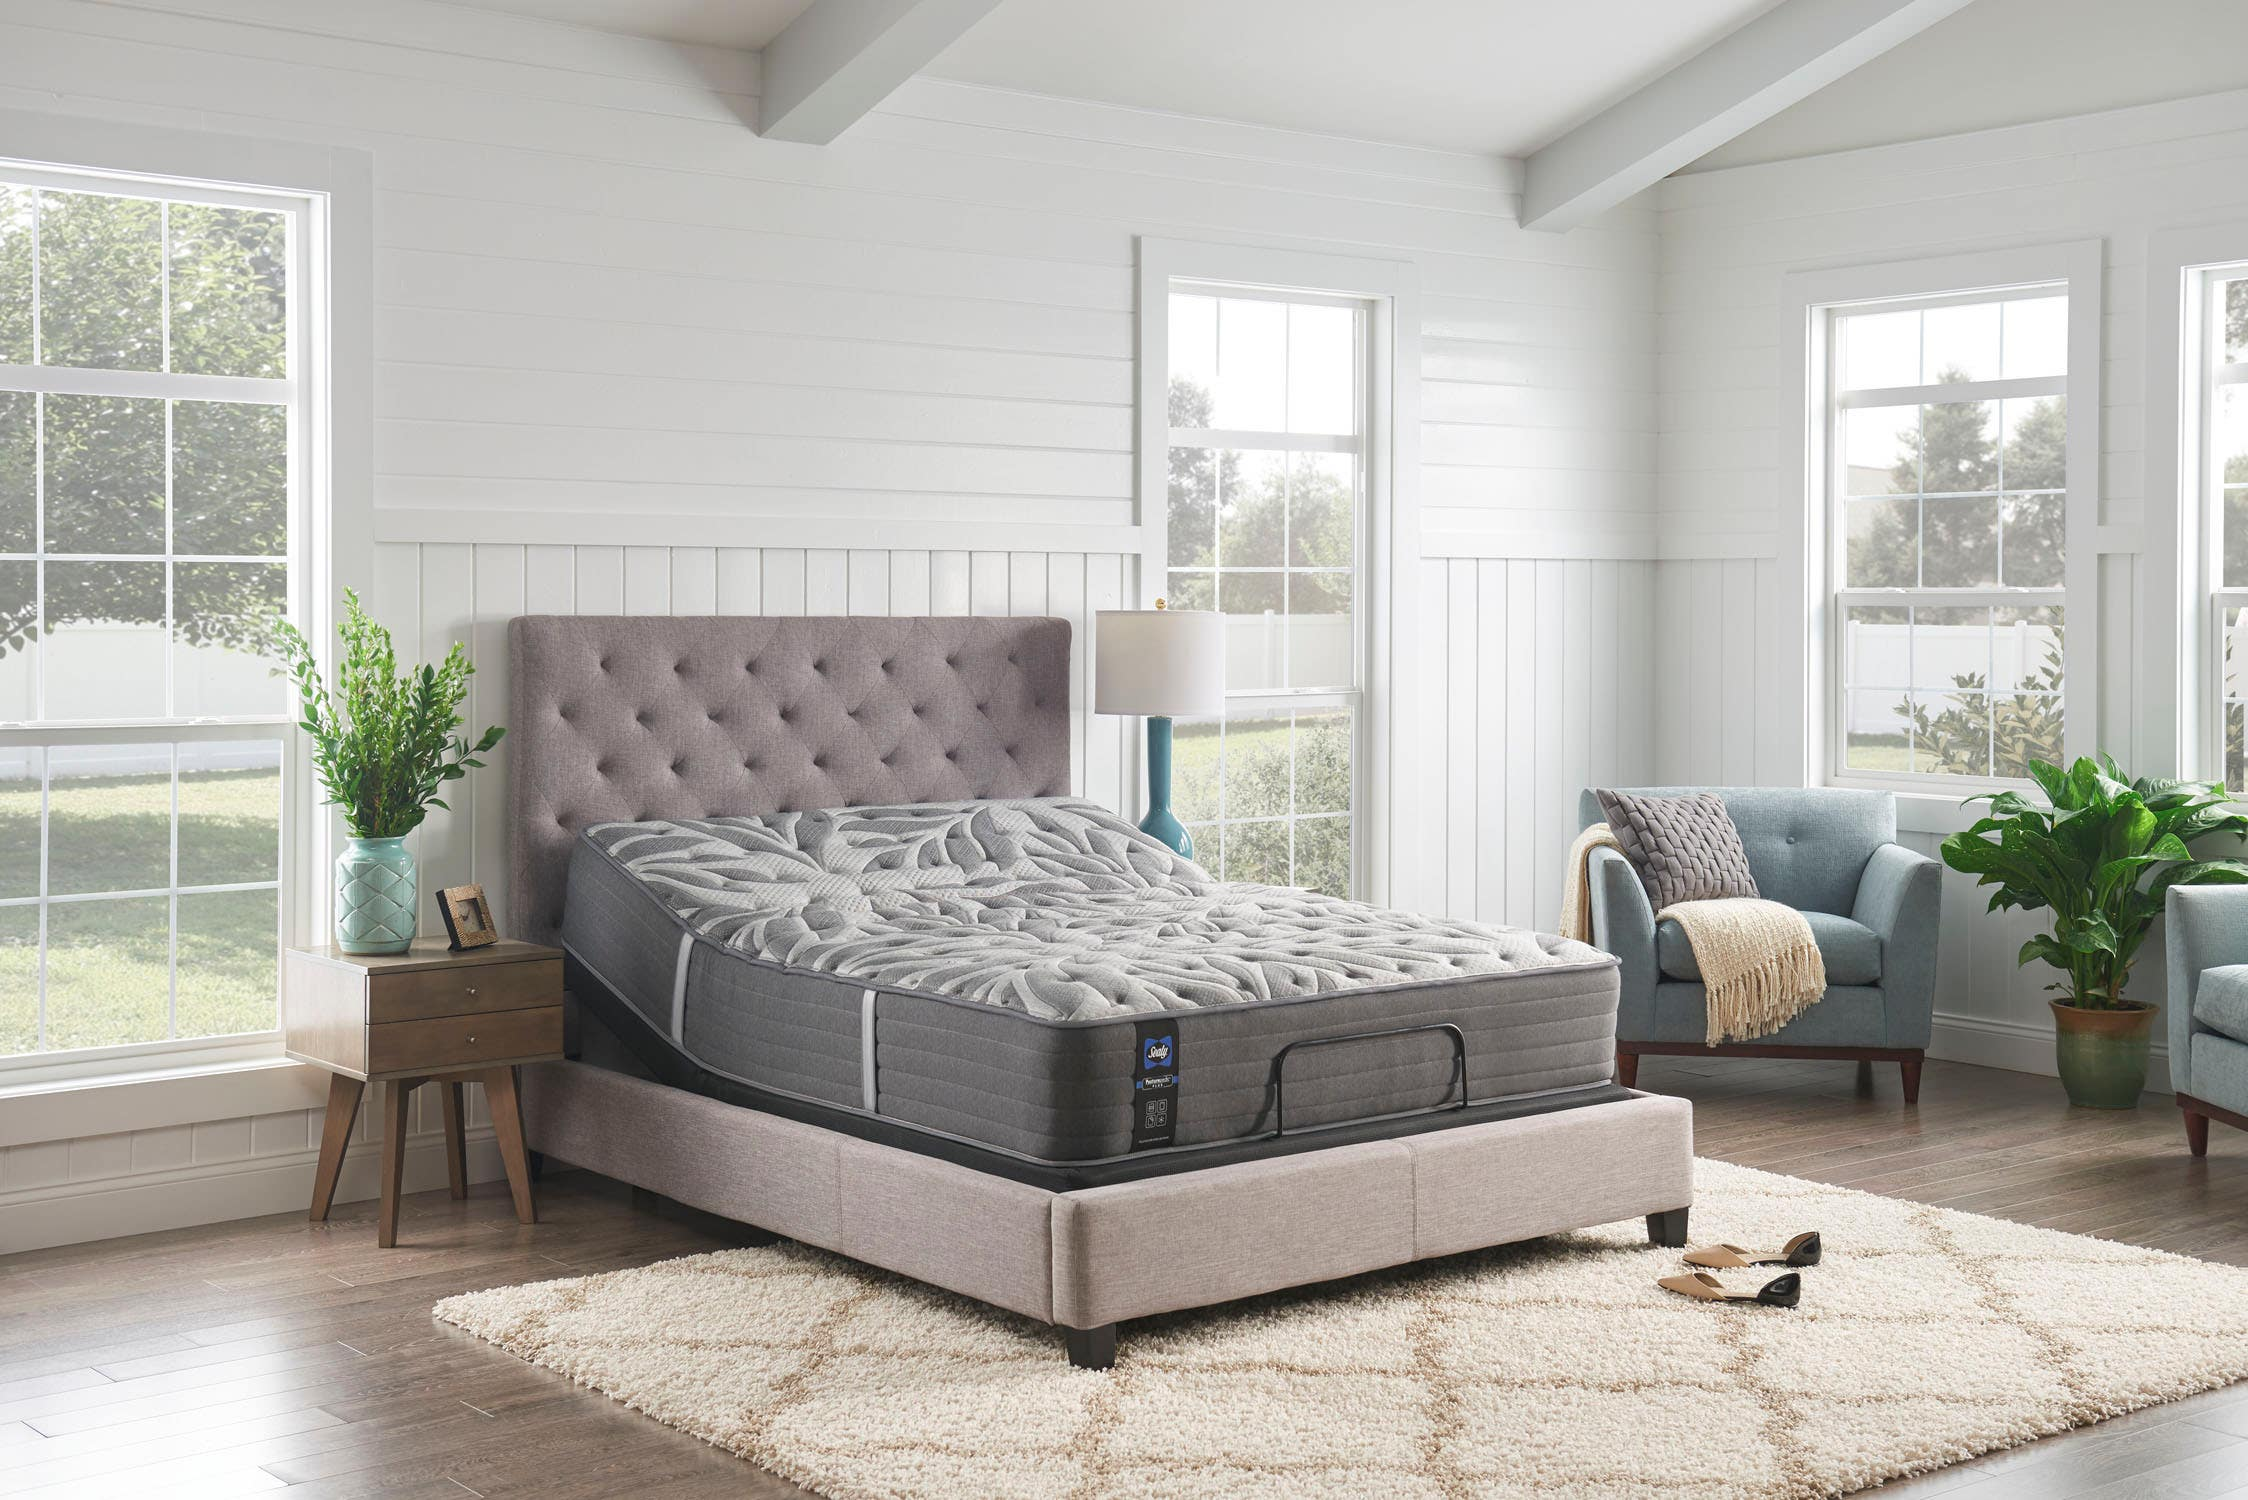 Adjustable Bed Bases and Smart Beds: All You Need to Know